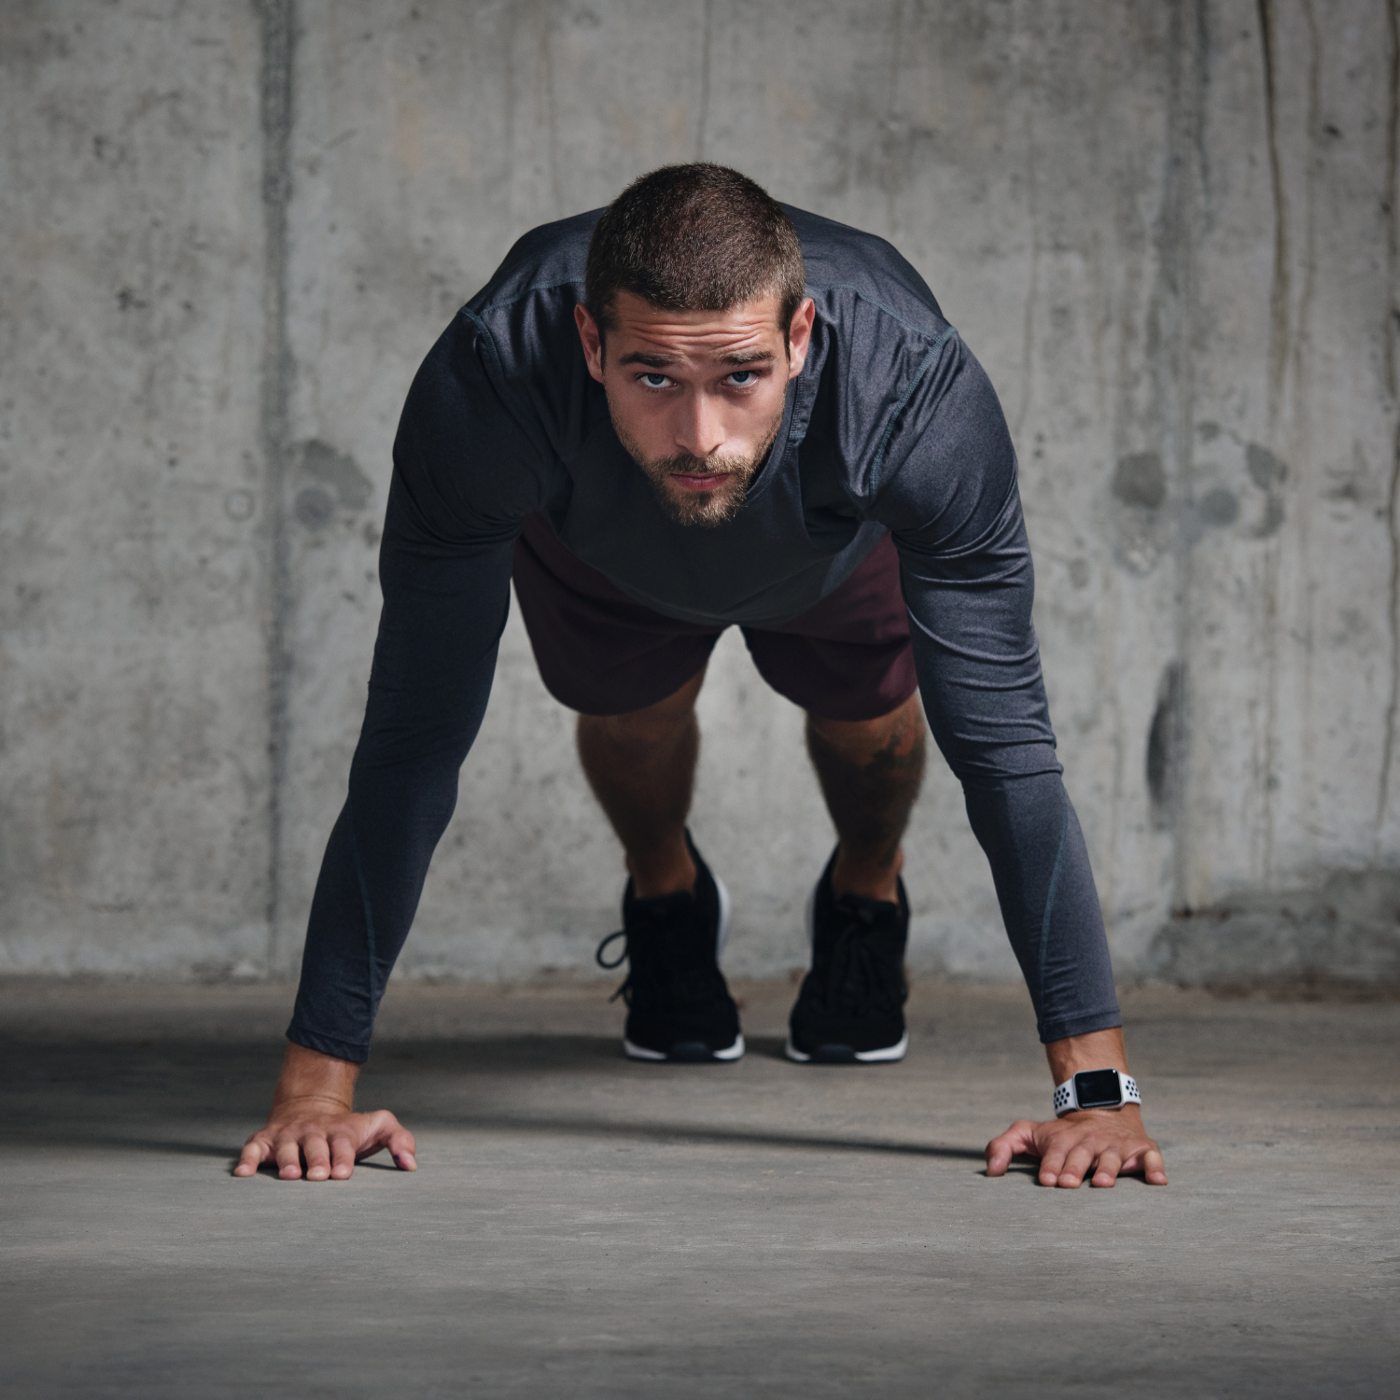 5 Things You Should Know About Mental Strength